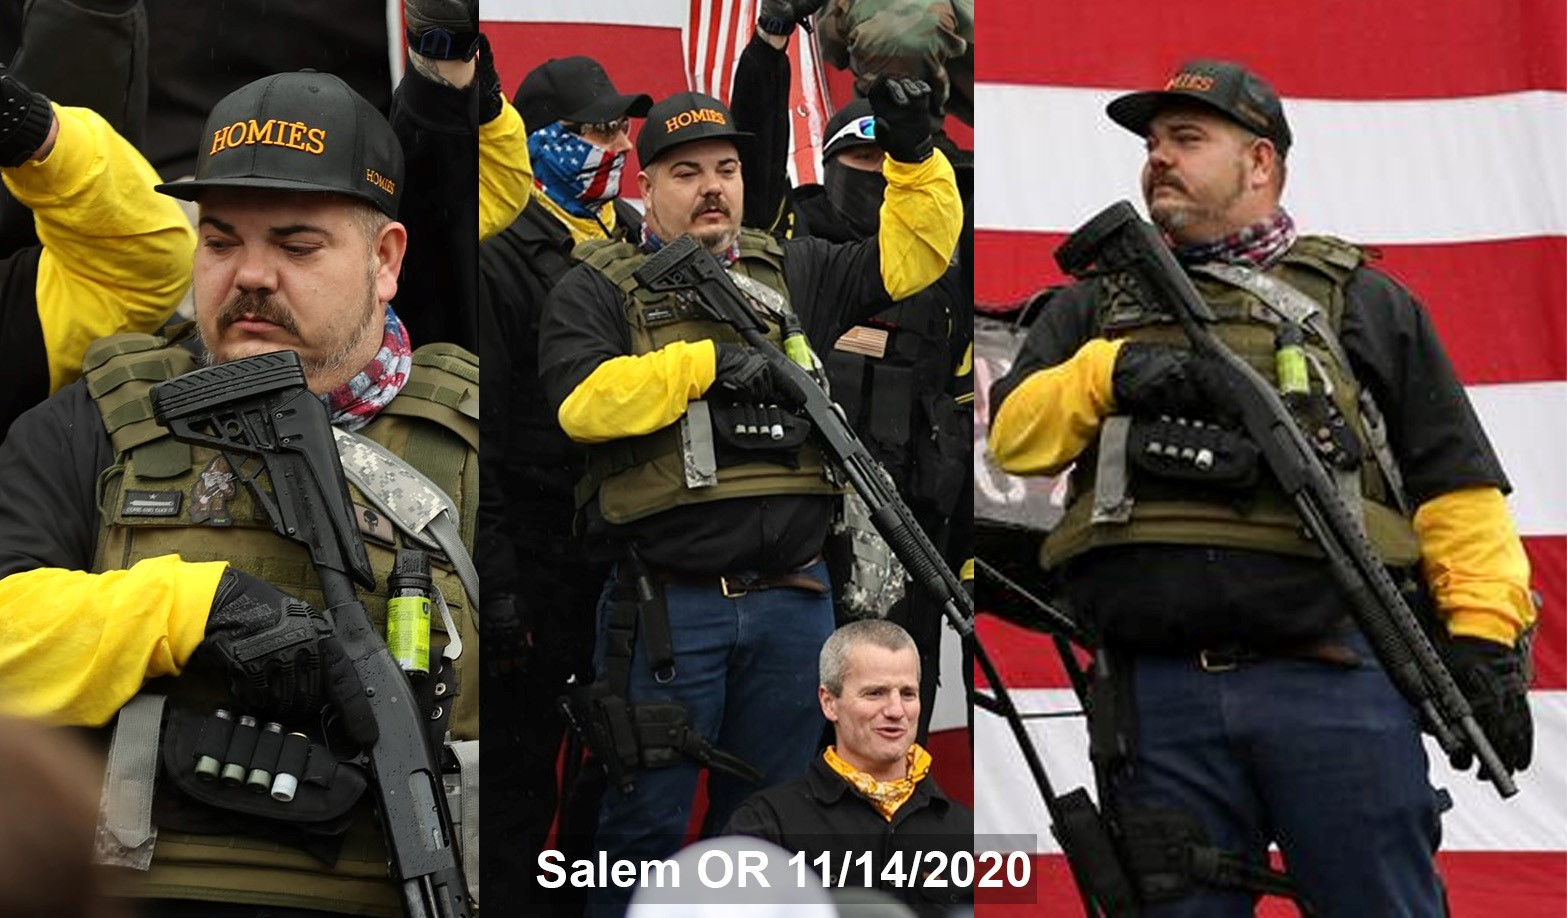 """Jake Mourer with a firearm during a """"Defeat the Steal"""" rally"""